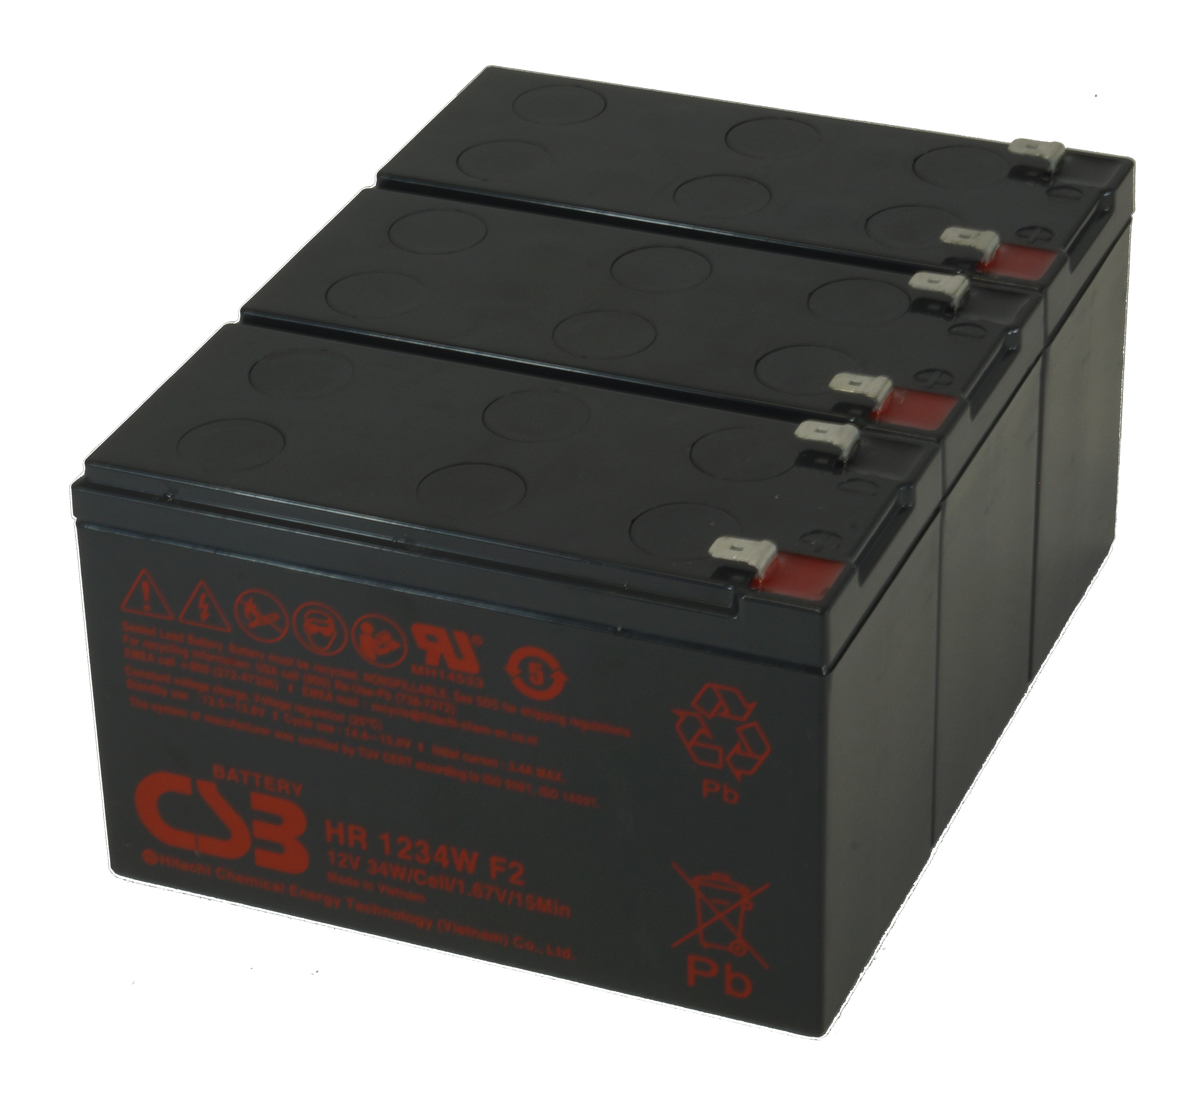 MDS2303 UPS Battery Kit for MGE AB 2303